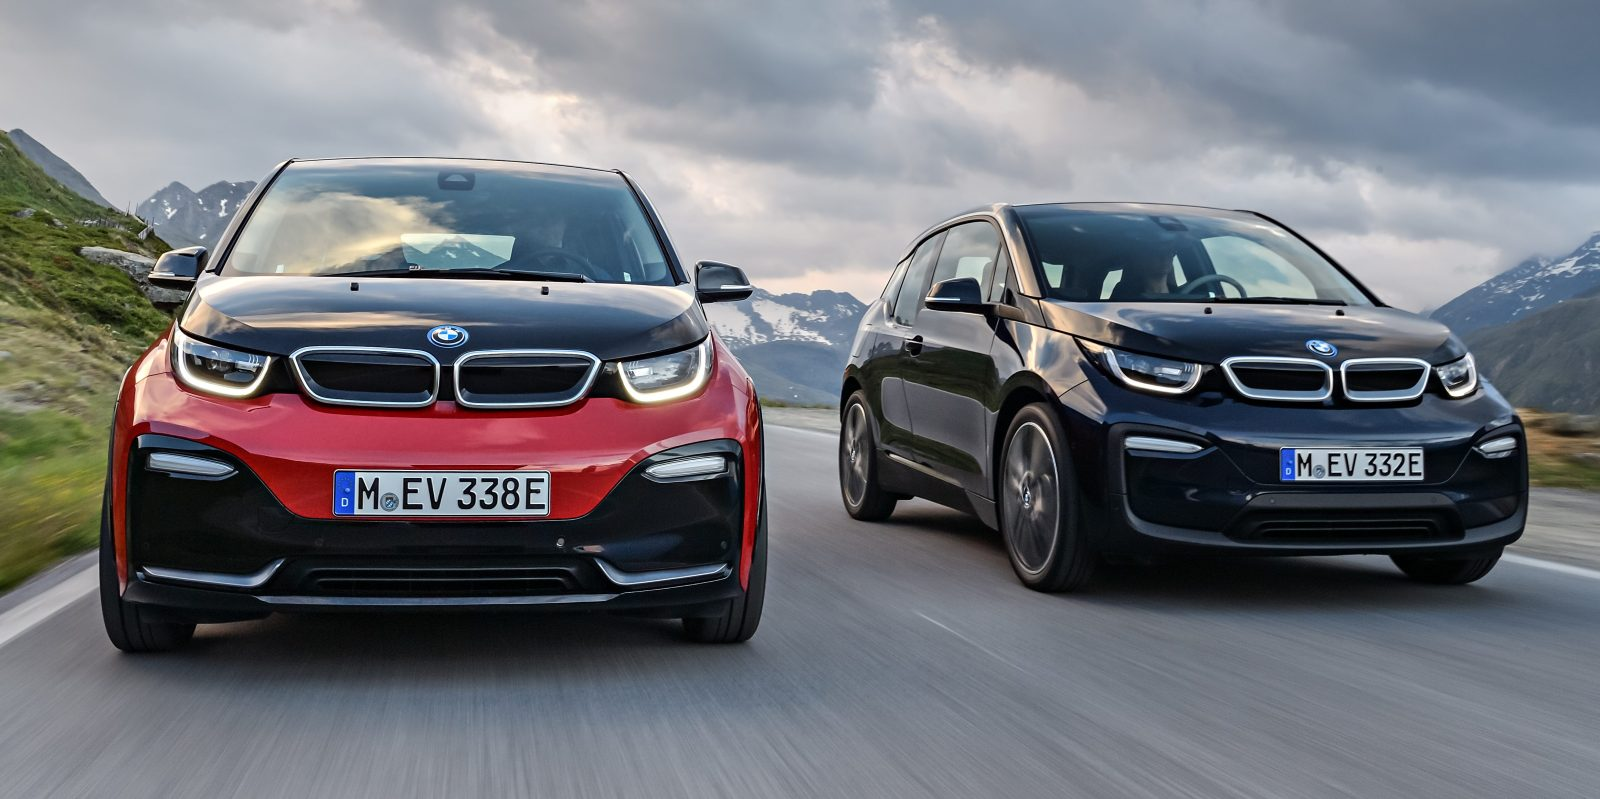 Bmw I3 Is Rumored To Get A New Battery Cell Upgrade To Push The